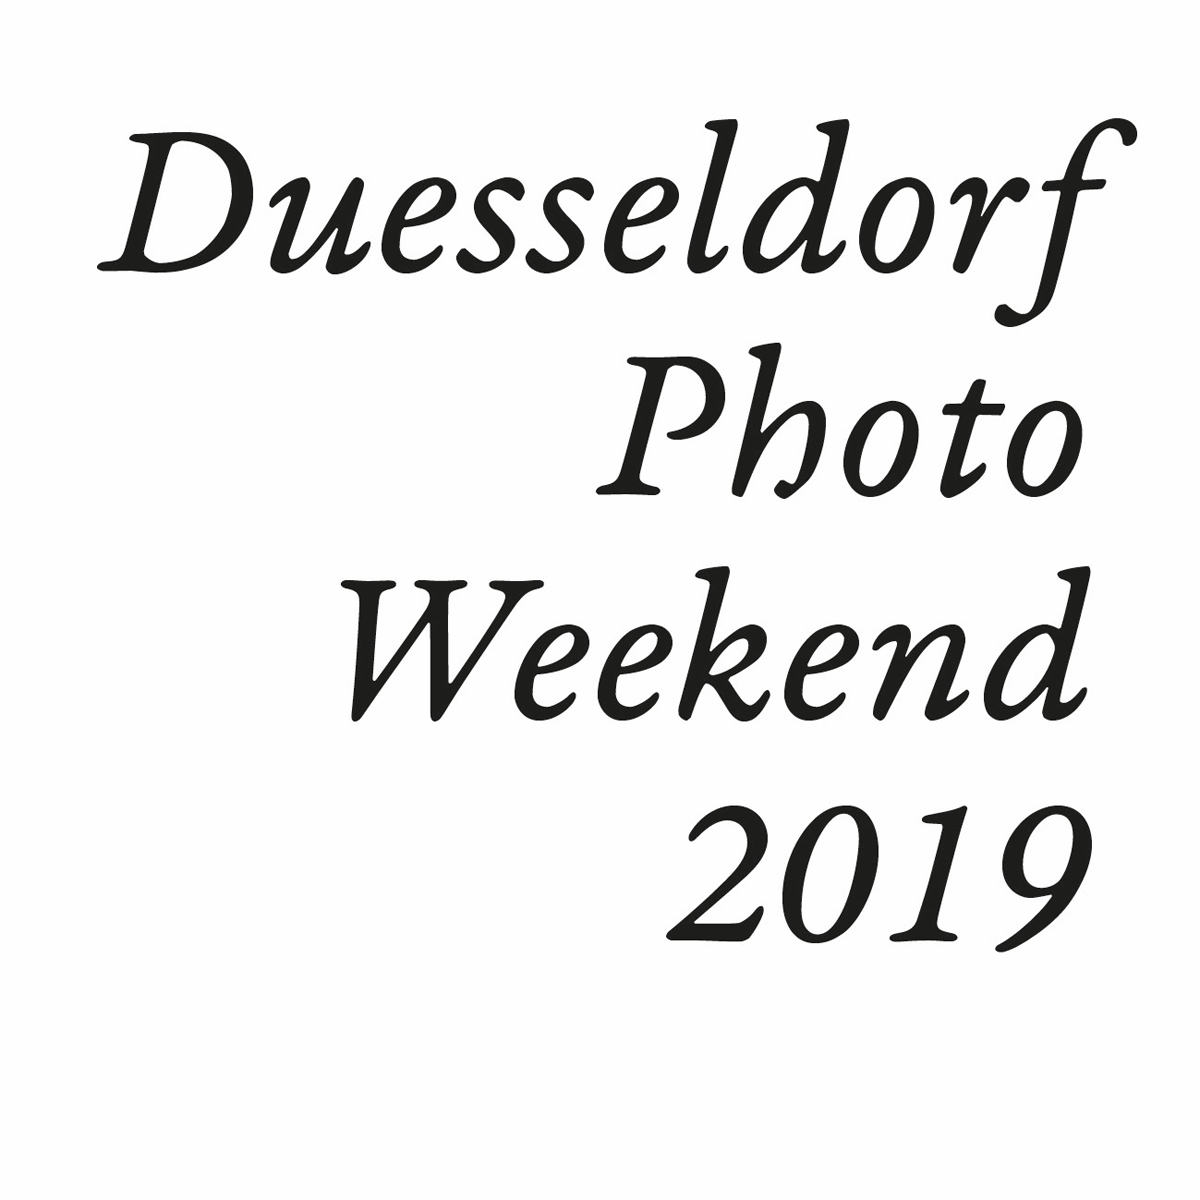 Duesseldorf Photo Weekend 2019